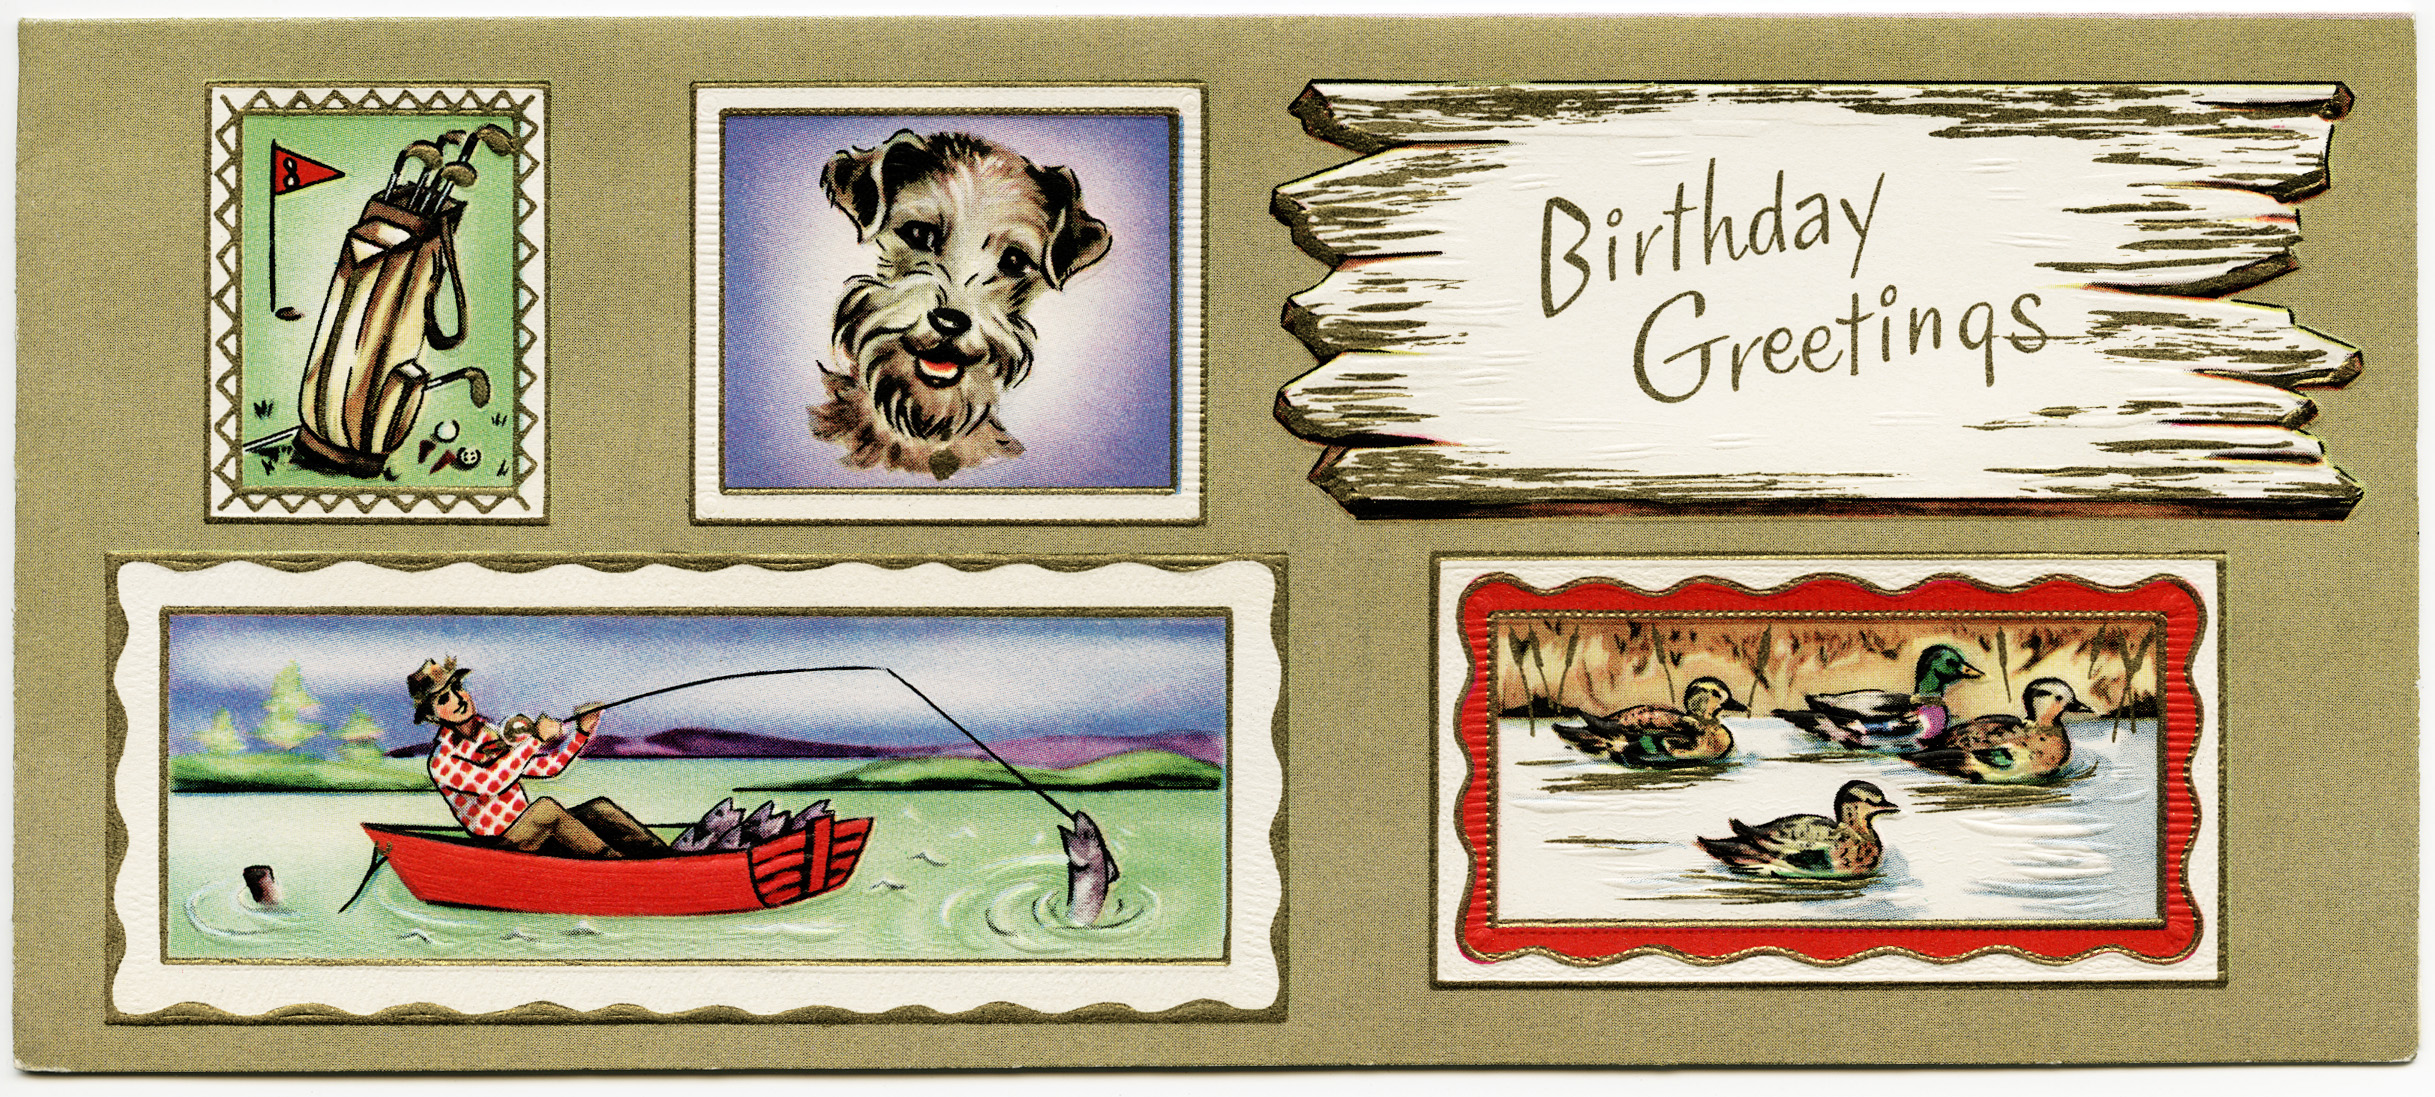 Masculine Vintage Birthday Card – Vintage Birthday Cards for Men